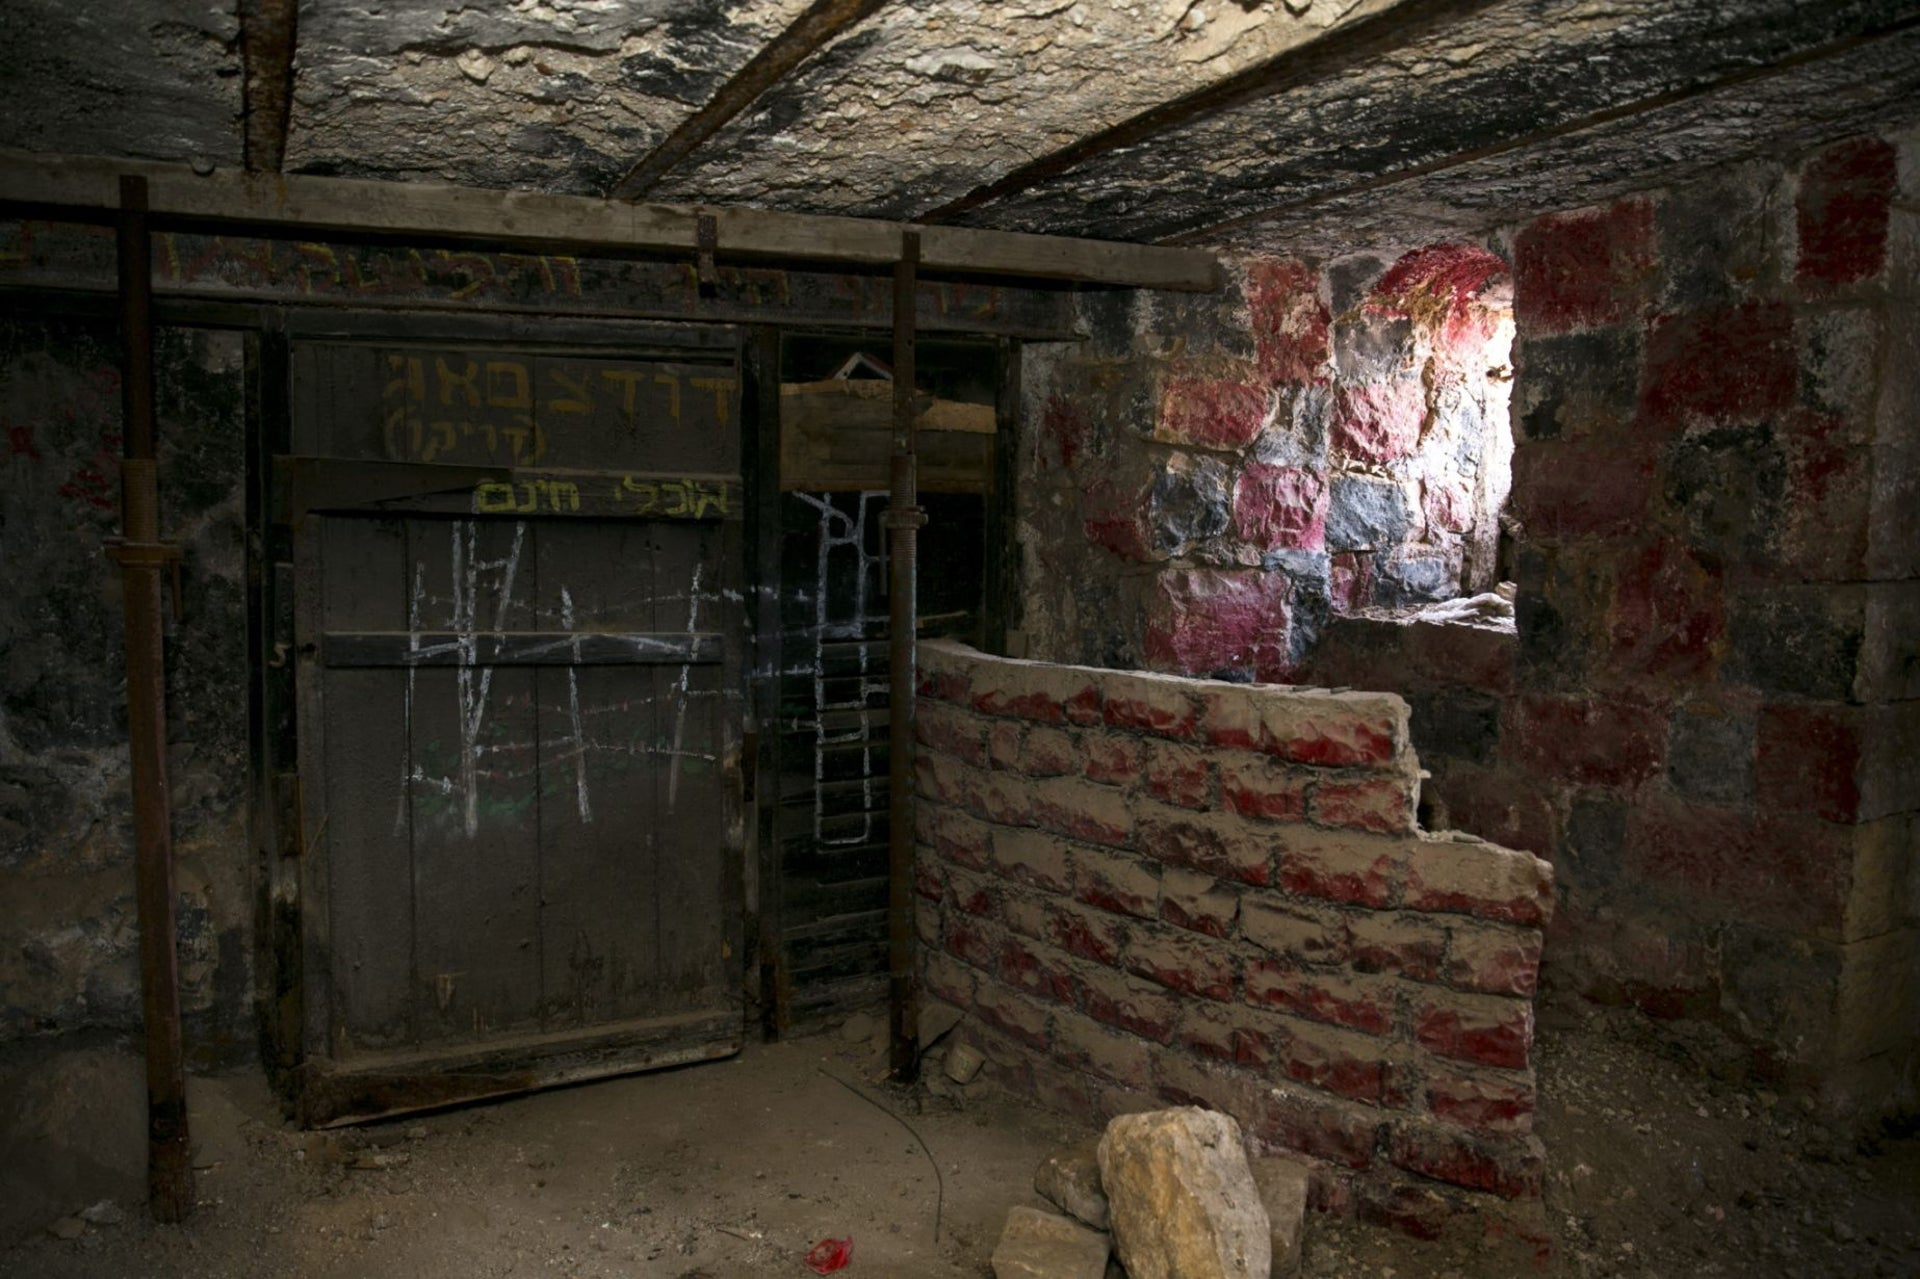 A cellar where Lehi fighters were imprisoned during the War of Independence, May 2016.